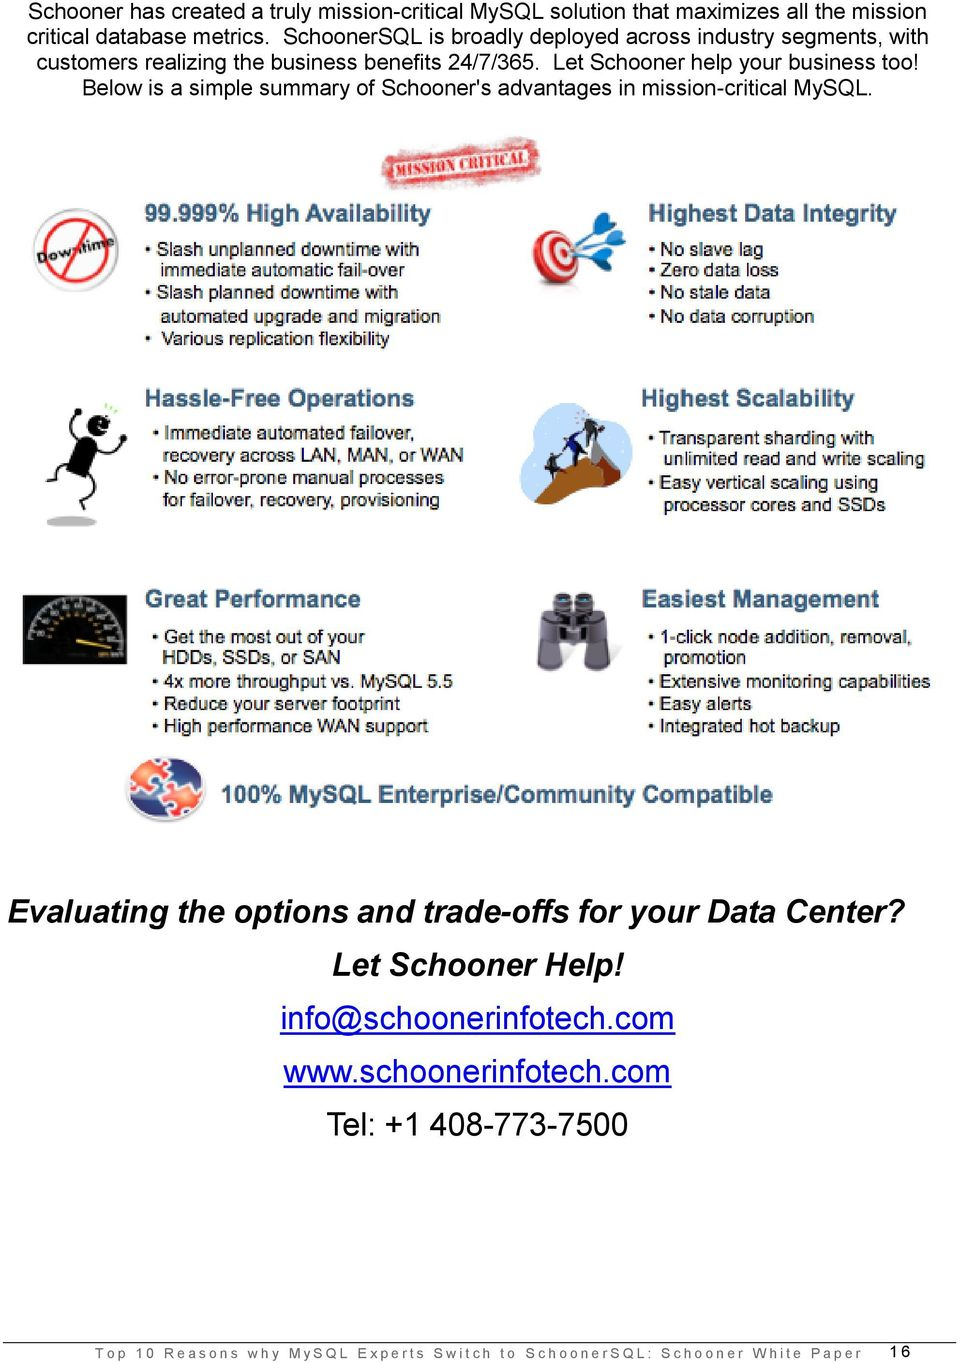 Below is a simple summary of Schooner's advantages in mission-critical MySQL. Evaluating the options and trade-offs for your Data Center? Let Schooner Help!